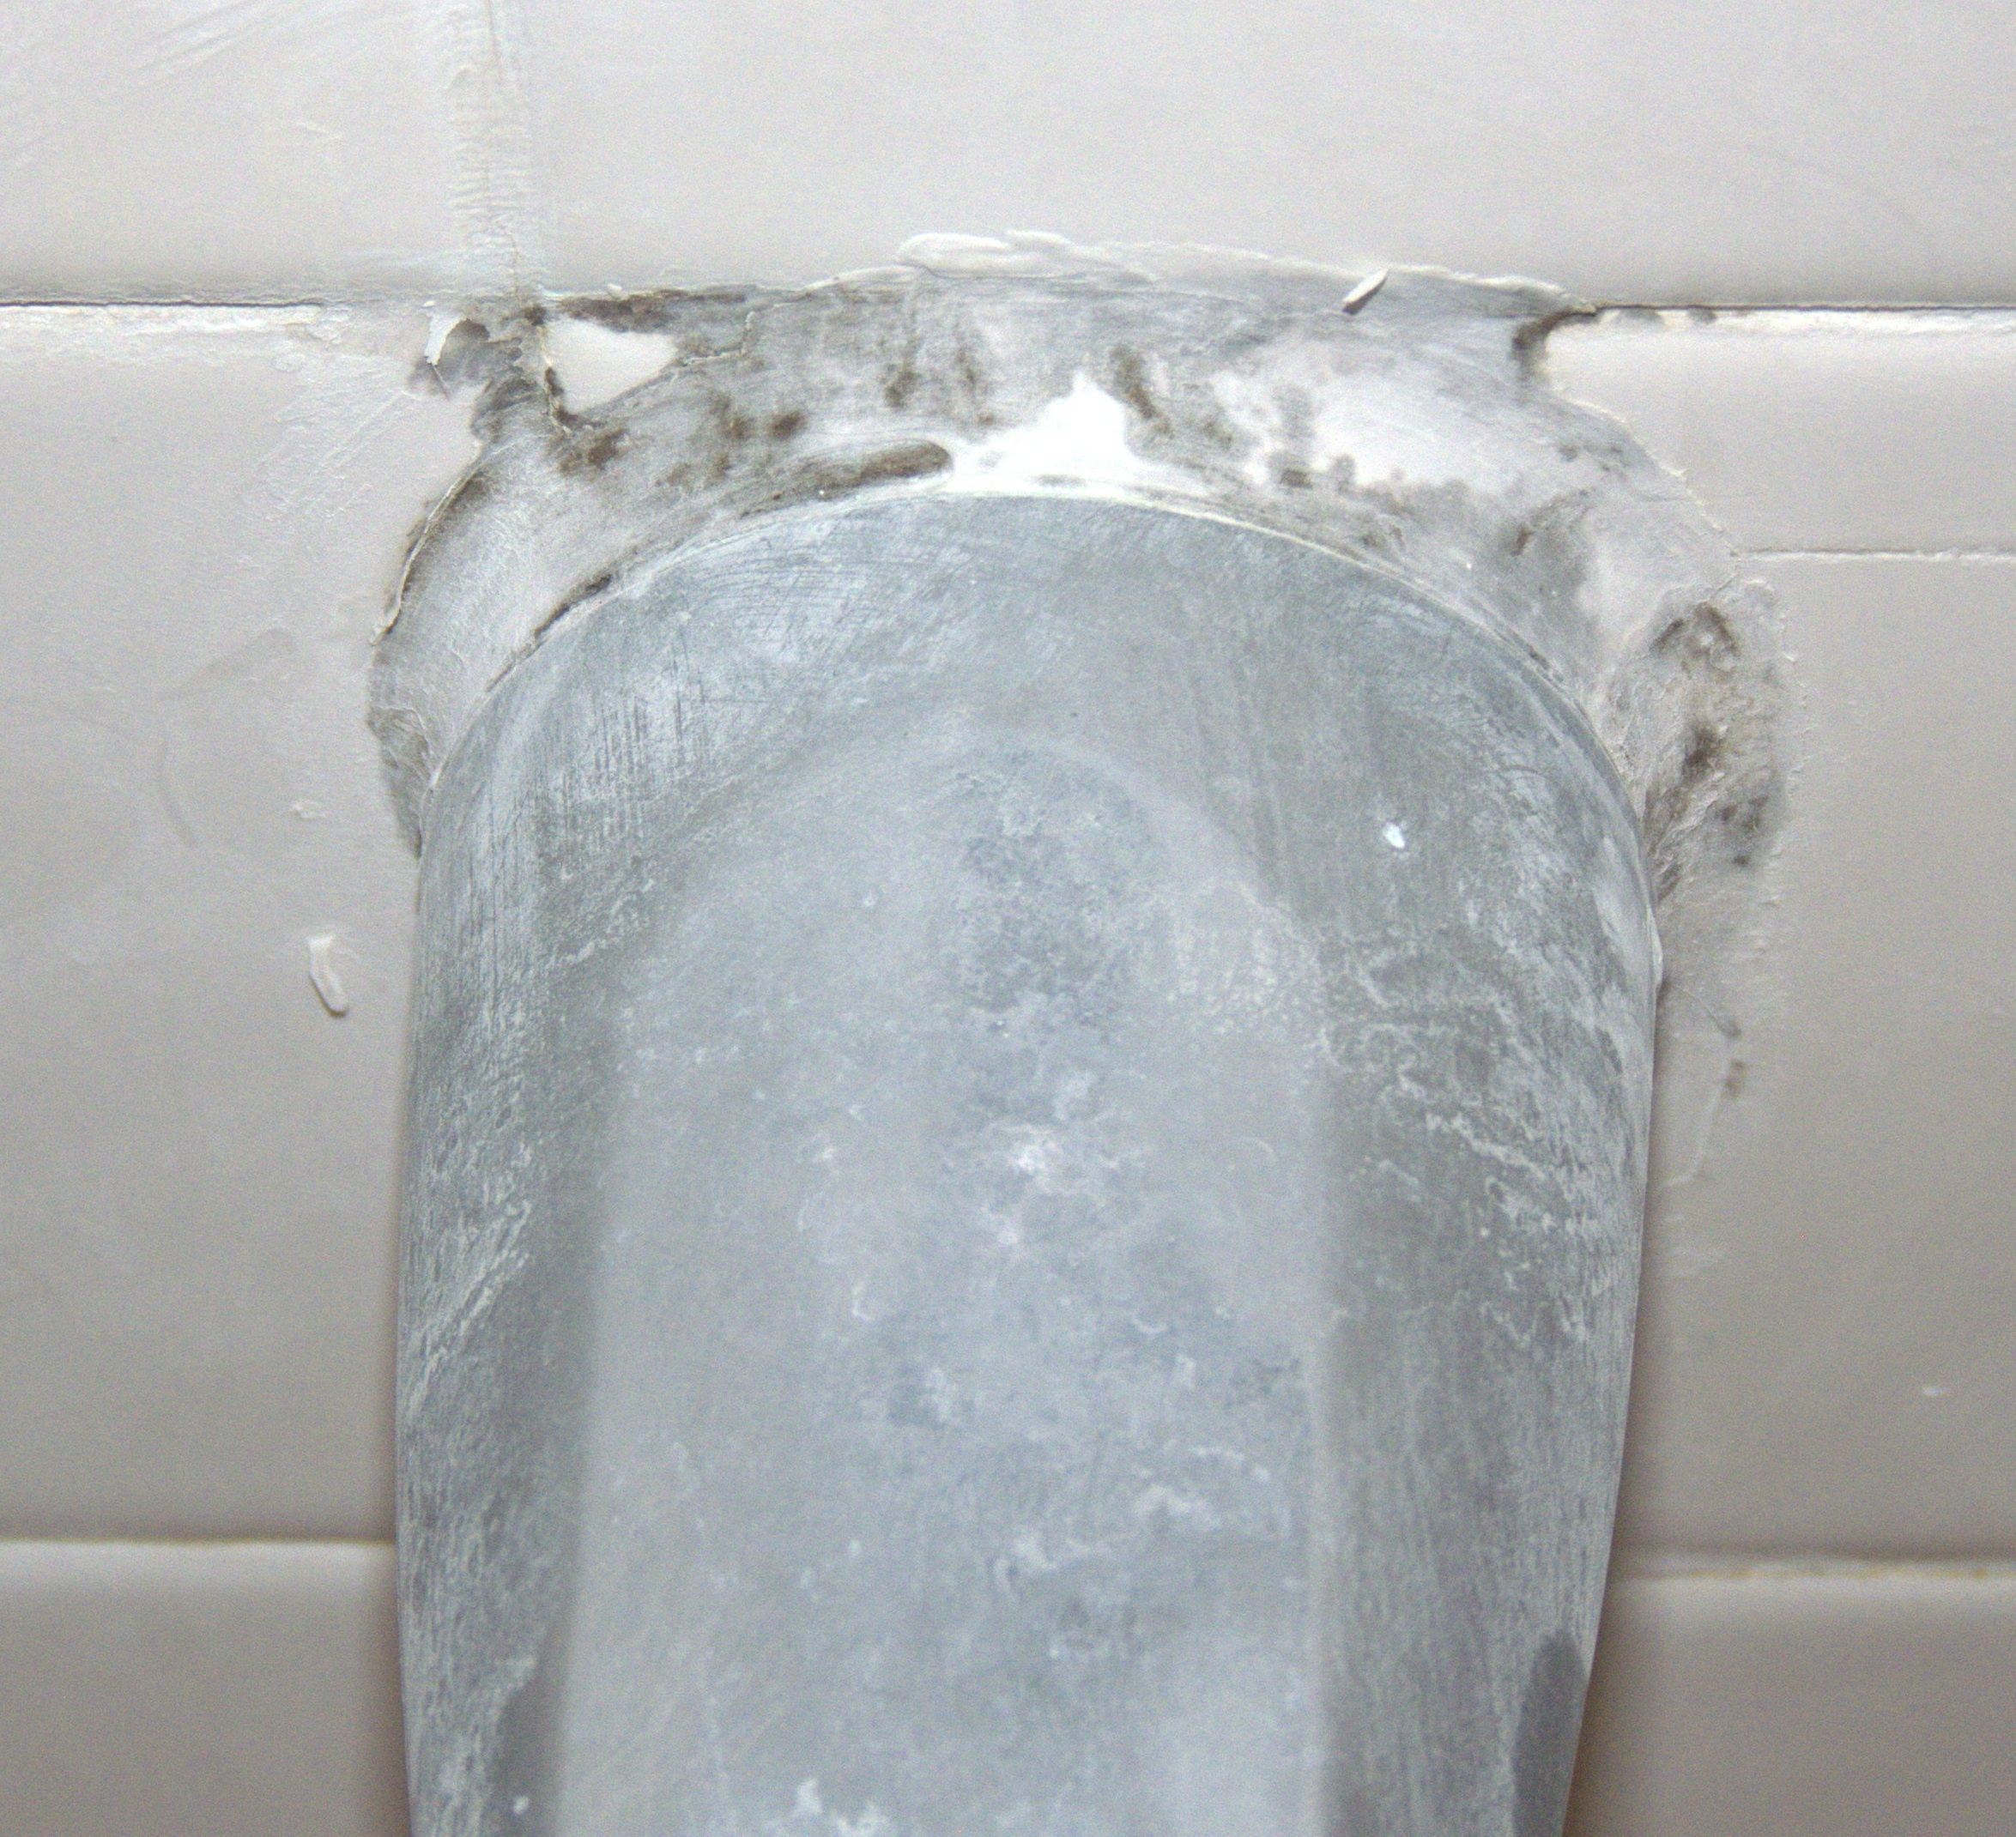 Bathroom Black Mold: Bathroom-mold-faucet